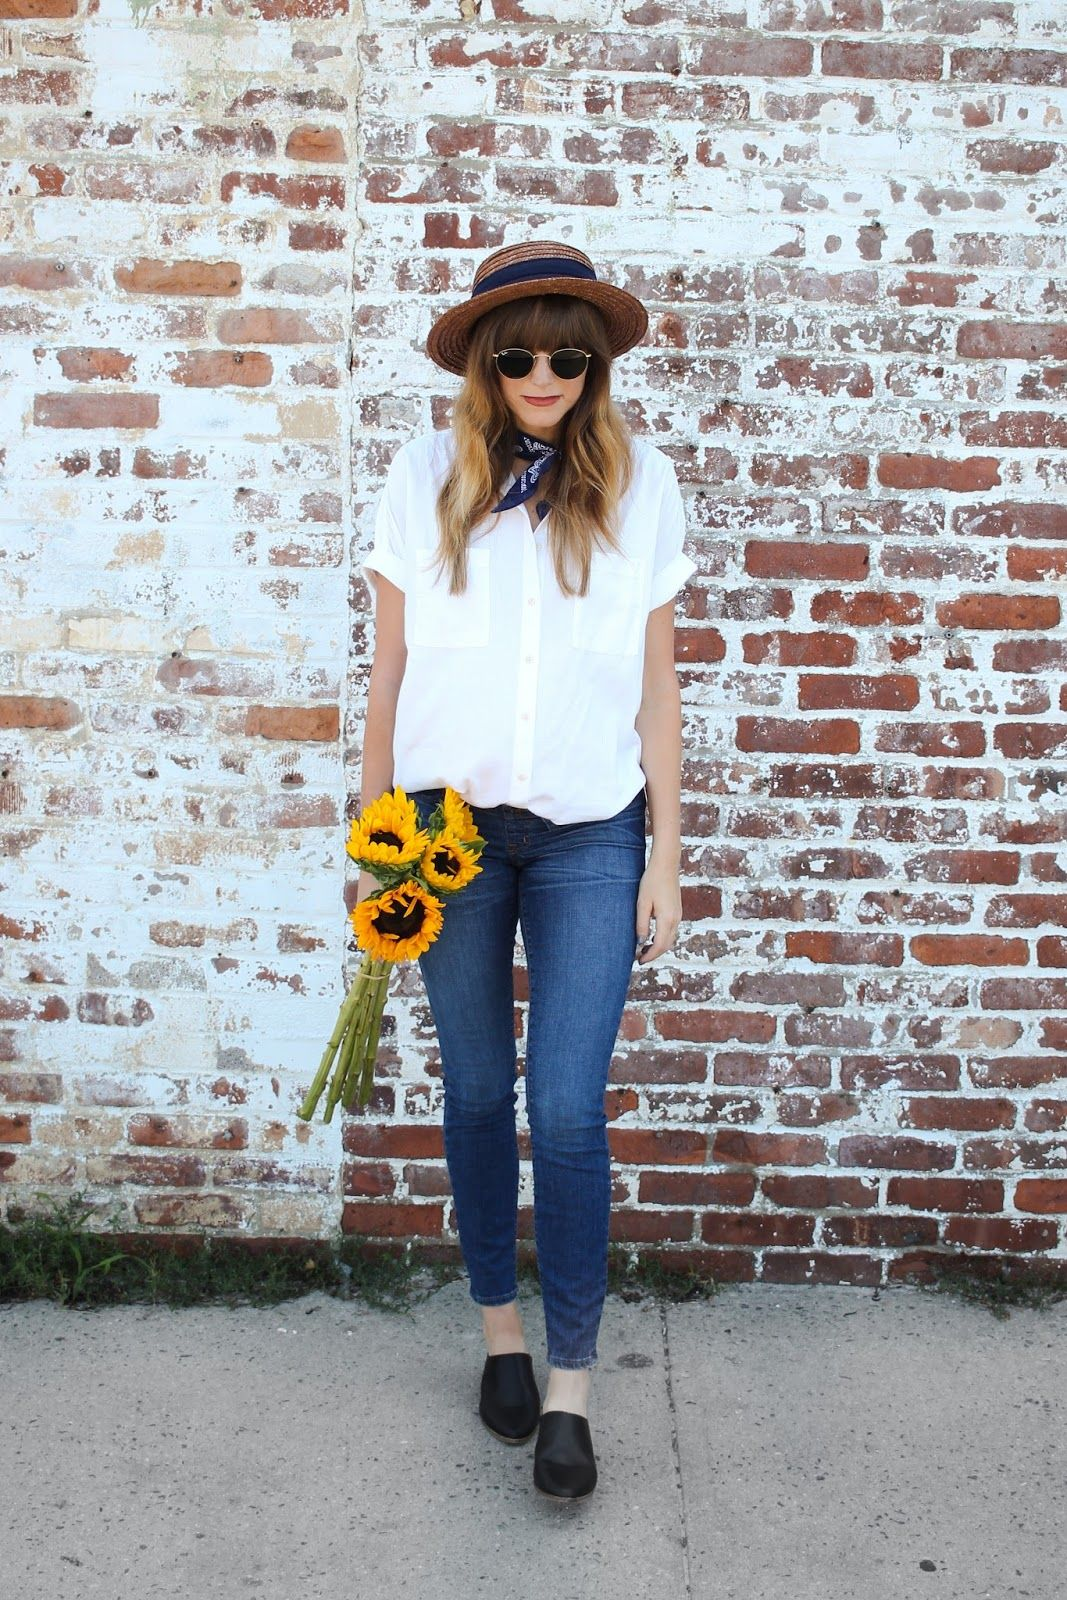 8f9028c7ec4d0 Madewell Maternity! : Steffys Pros and Cons | A NYC Personal Style, Travel  and…